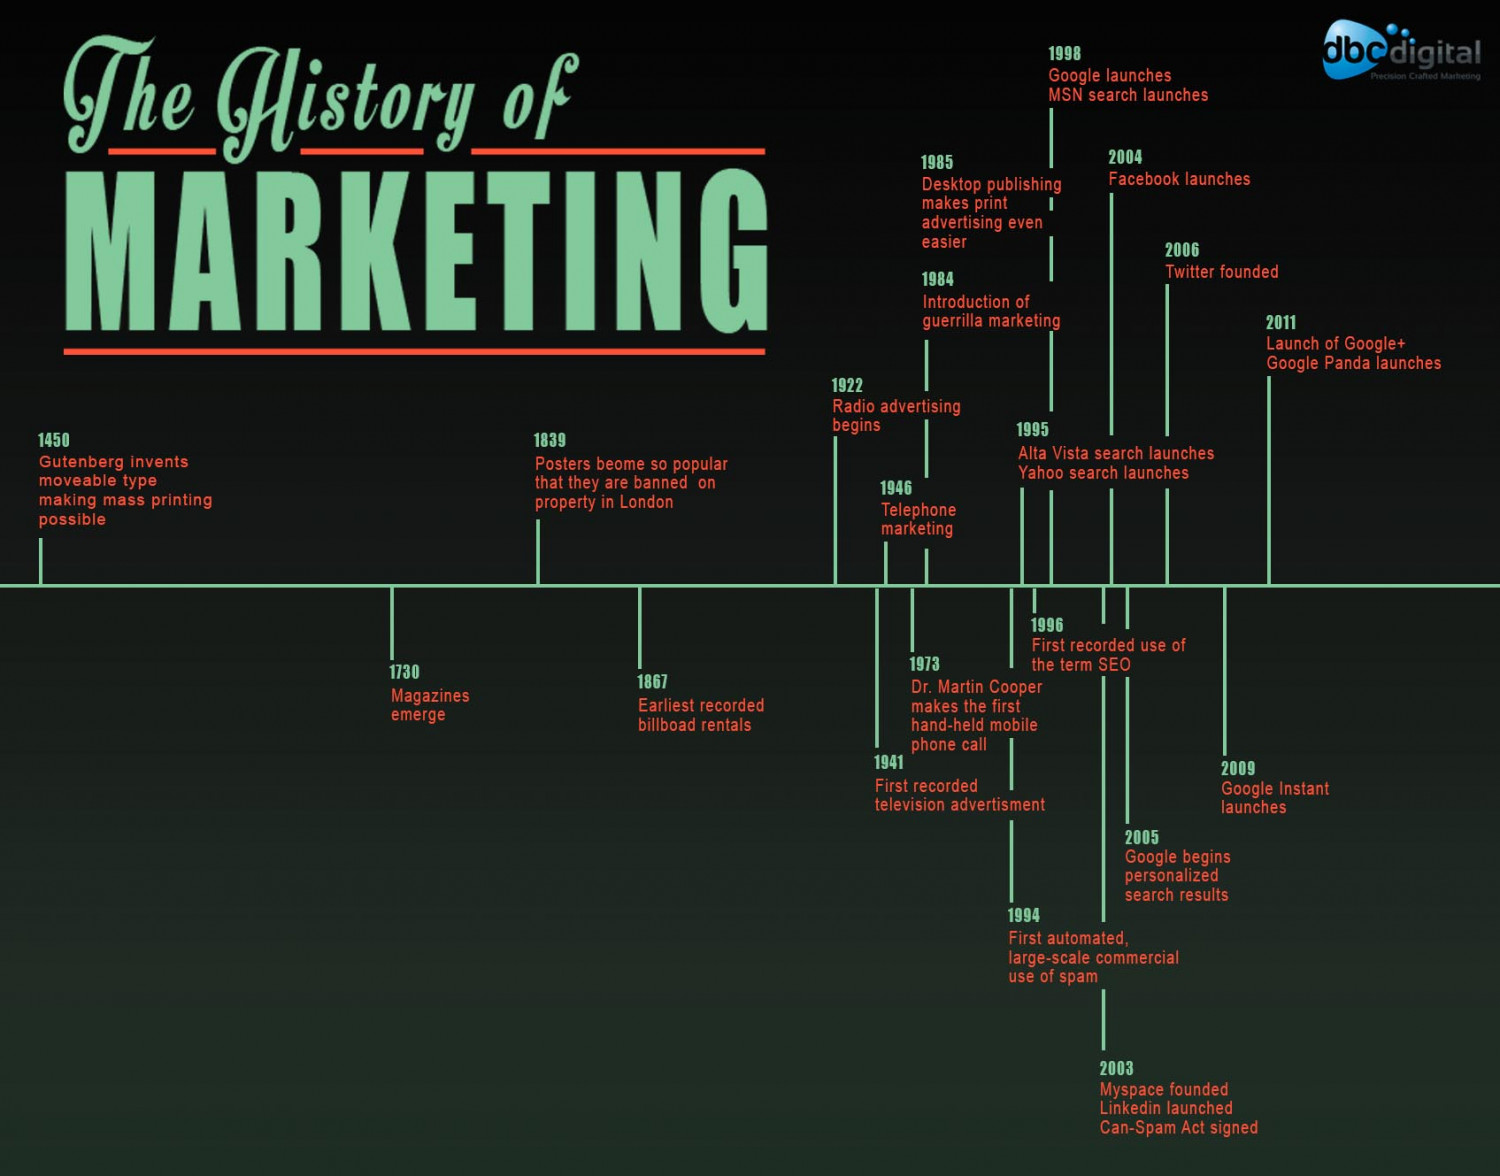 The History of Marketing Infographic